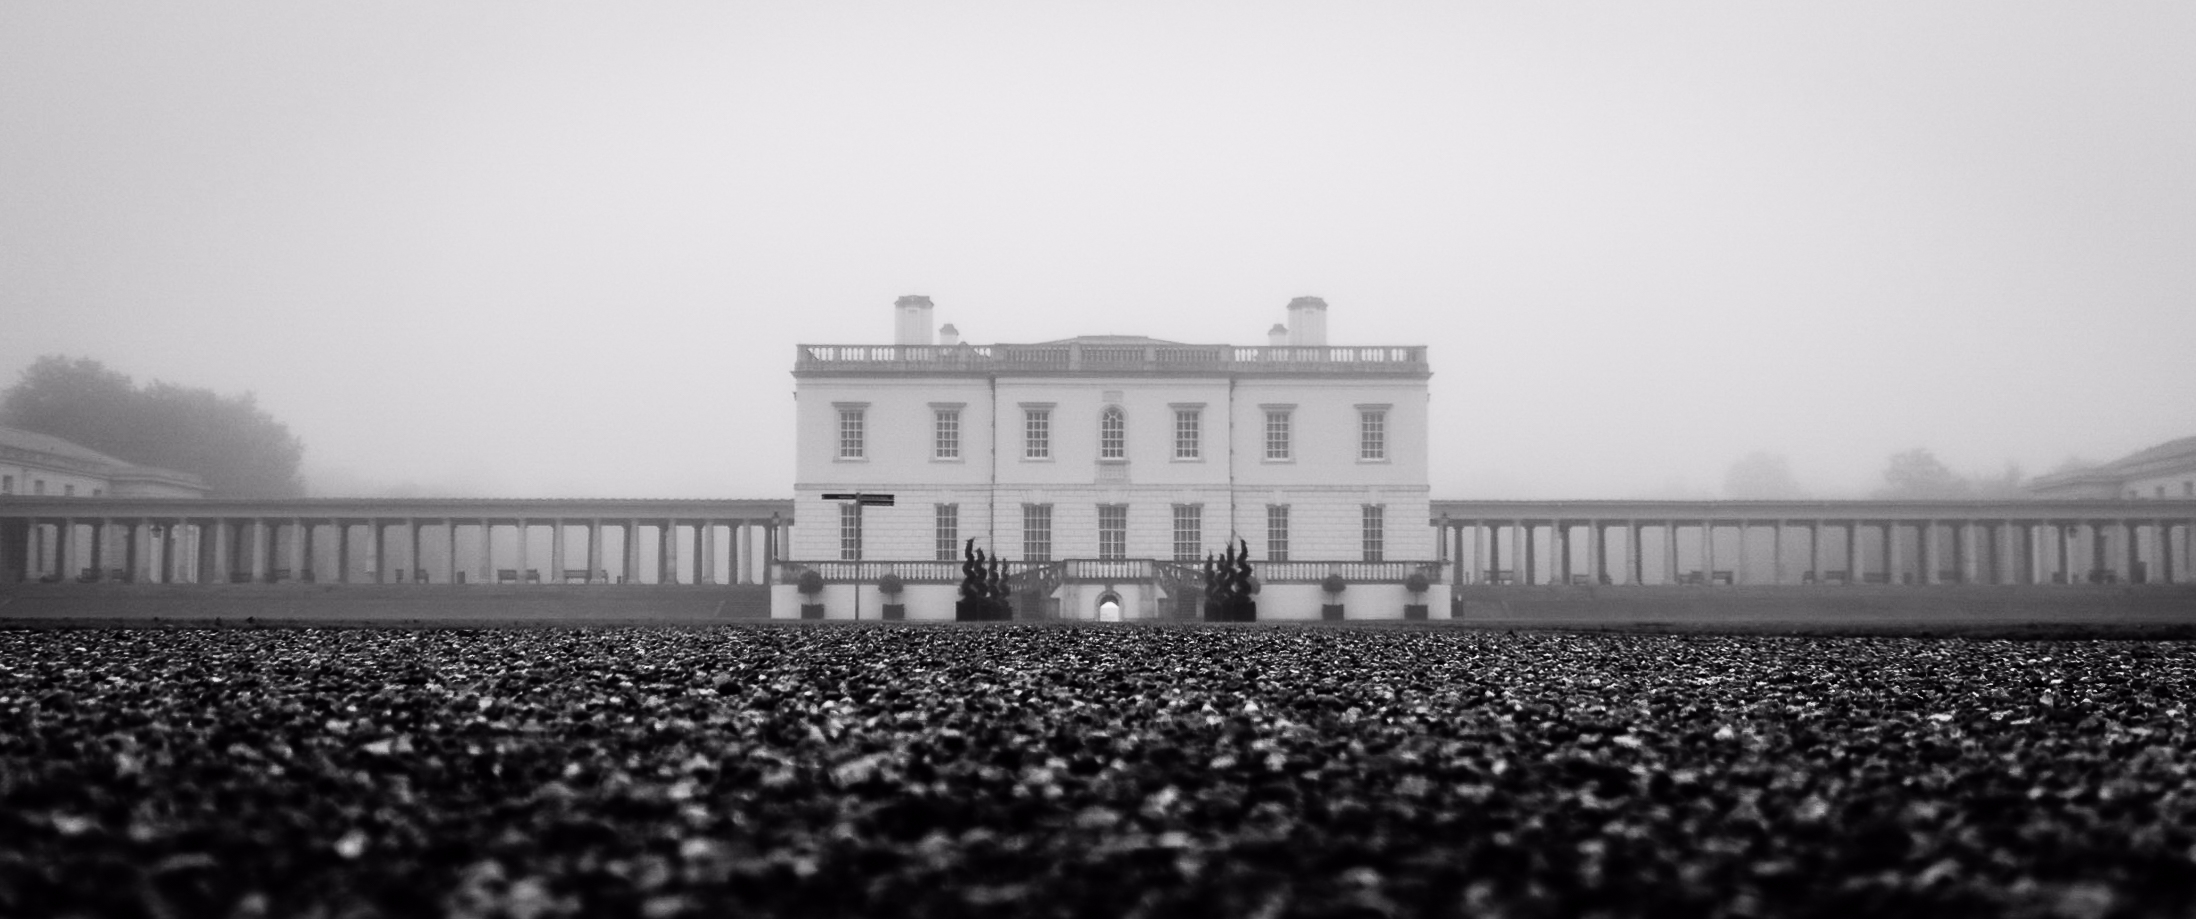 | House Royal Parks Park - Greenwich - fabianodu | ello